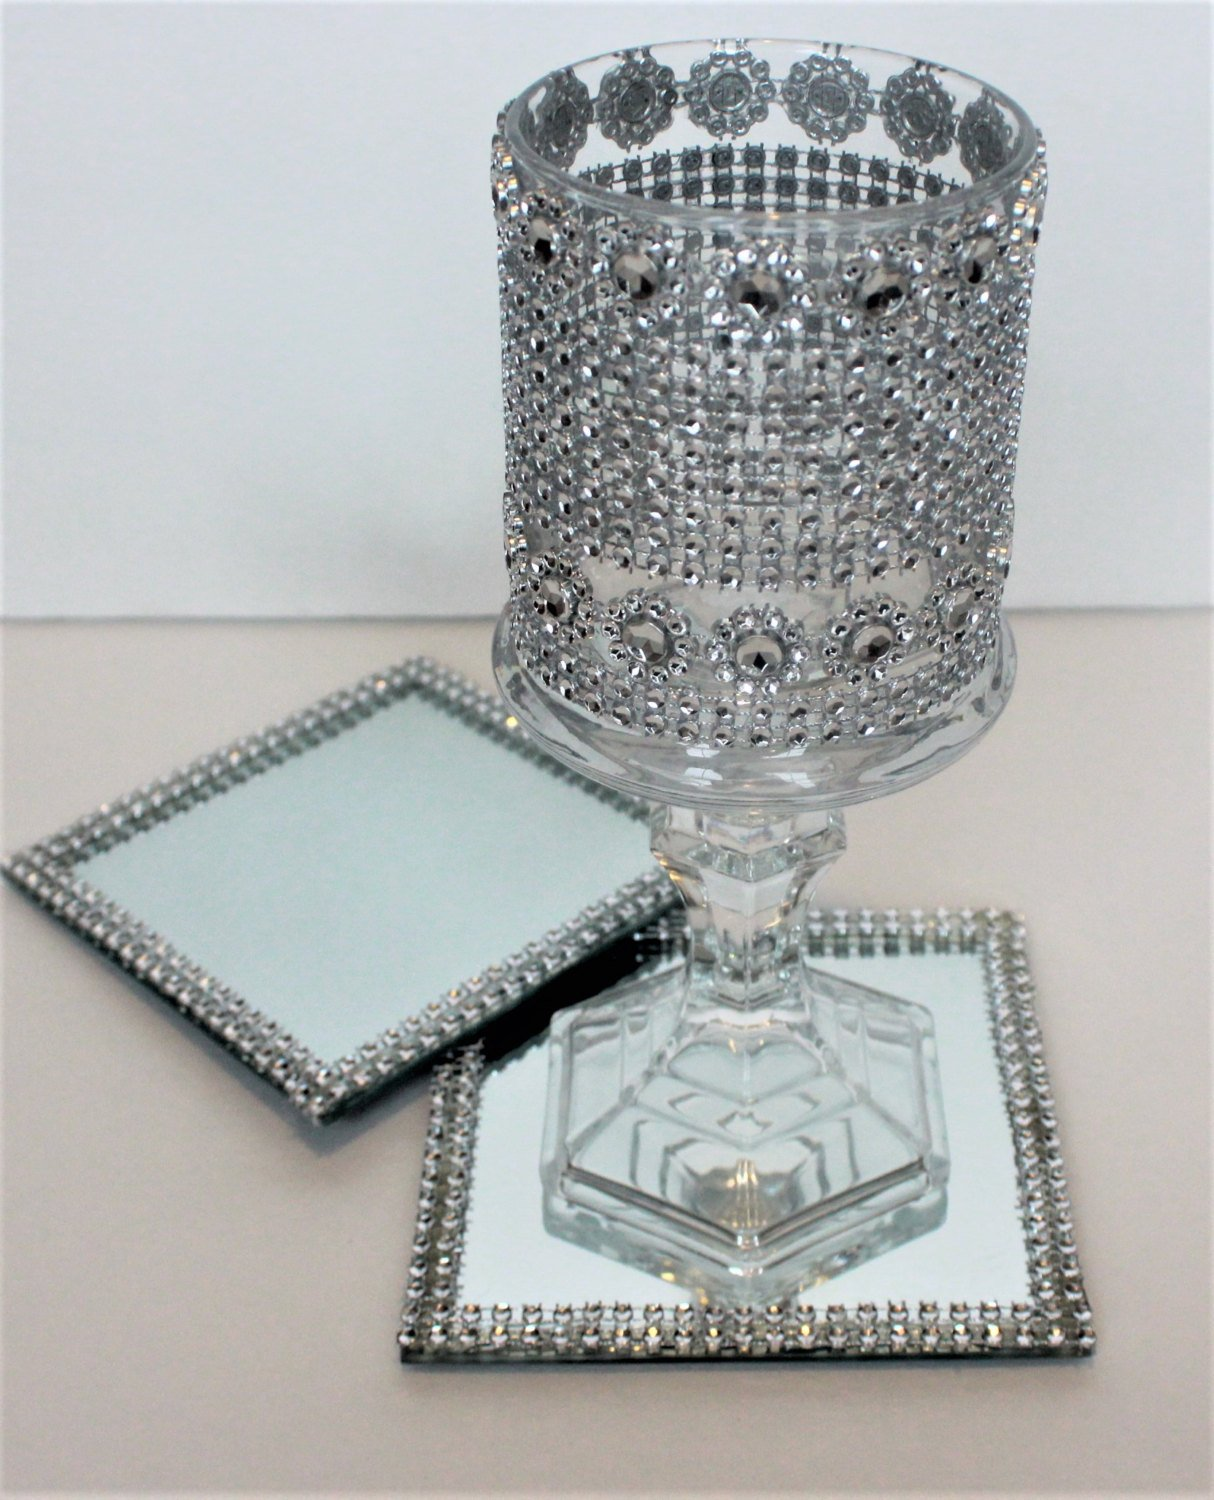 Amazon Com Set Of 10 Wedding Table Coasters Mirror Emblished Rhinestone Wedding Mirror Tray For Candle Holder 5 By 5 Inch With A Bling Base Mirror Handmade